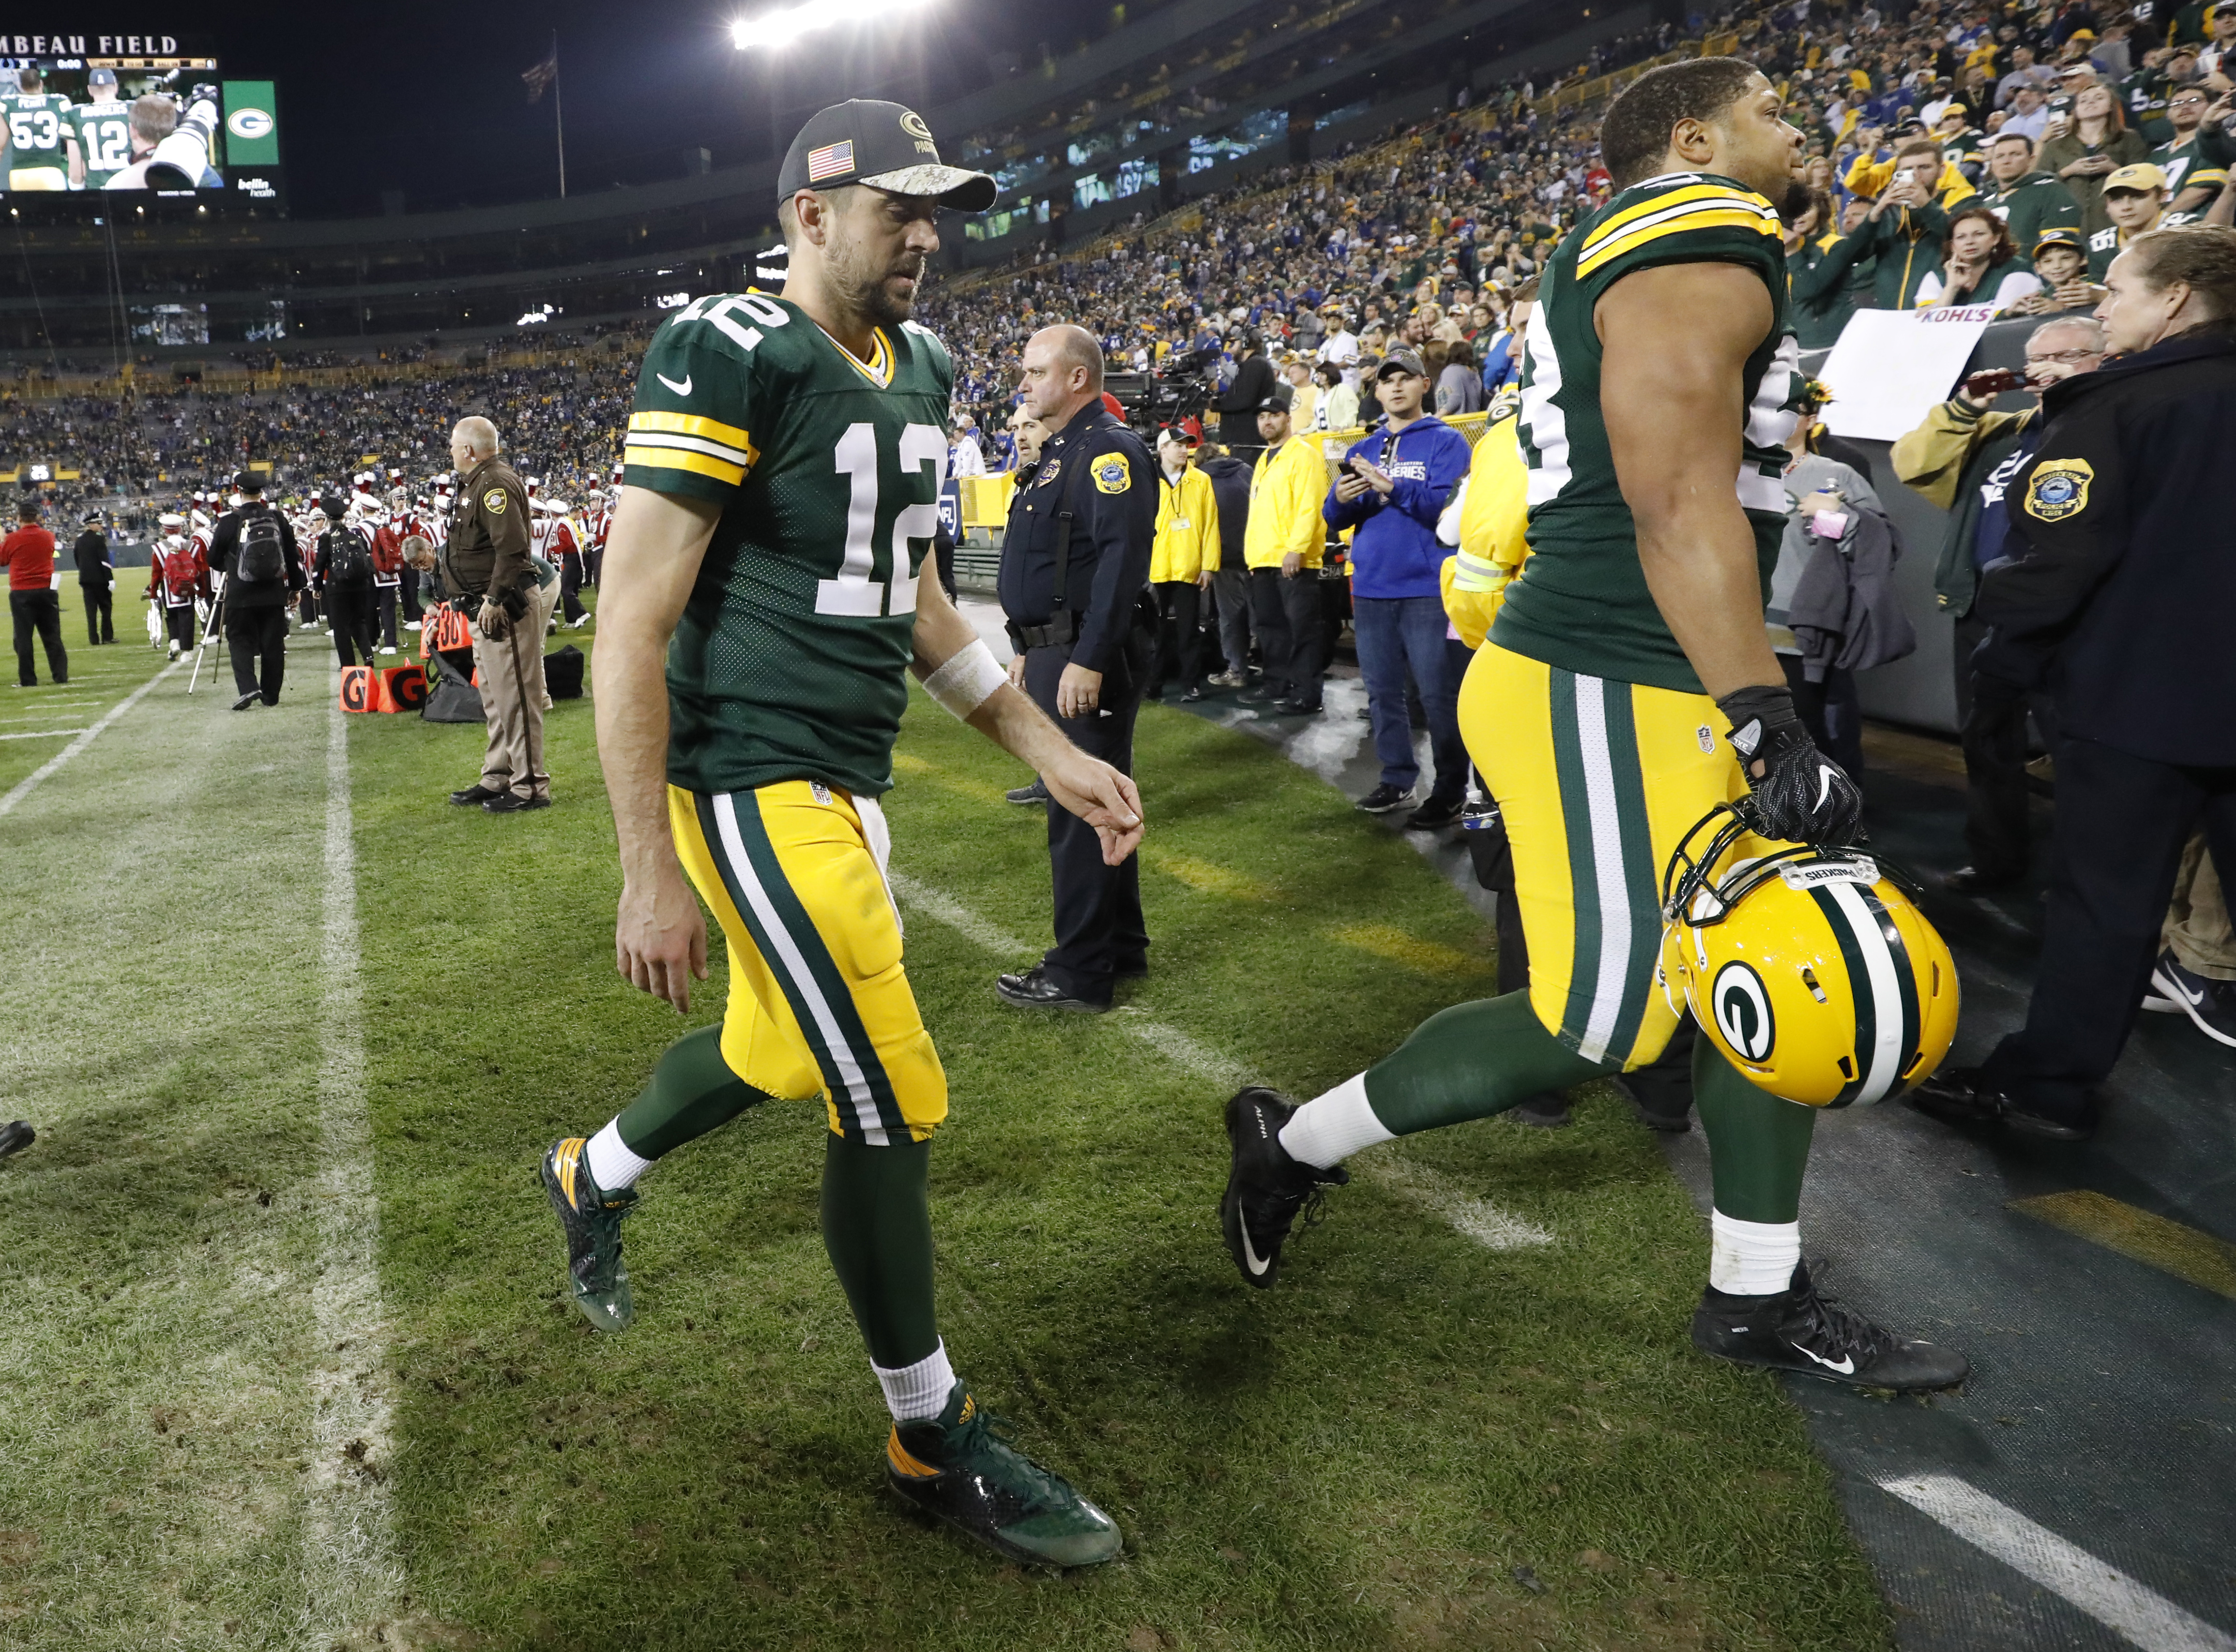 Green Bay Packers' Aaron Rodgers walks off the field after an NFL football game against the Indianapolis Colts Sunday, Nov. 6, 2016, in Green Bay, Wis. The Colts won 31-26. (AP Photo/Jeffrey Phelps)